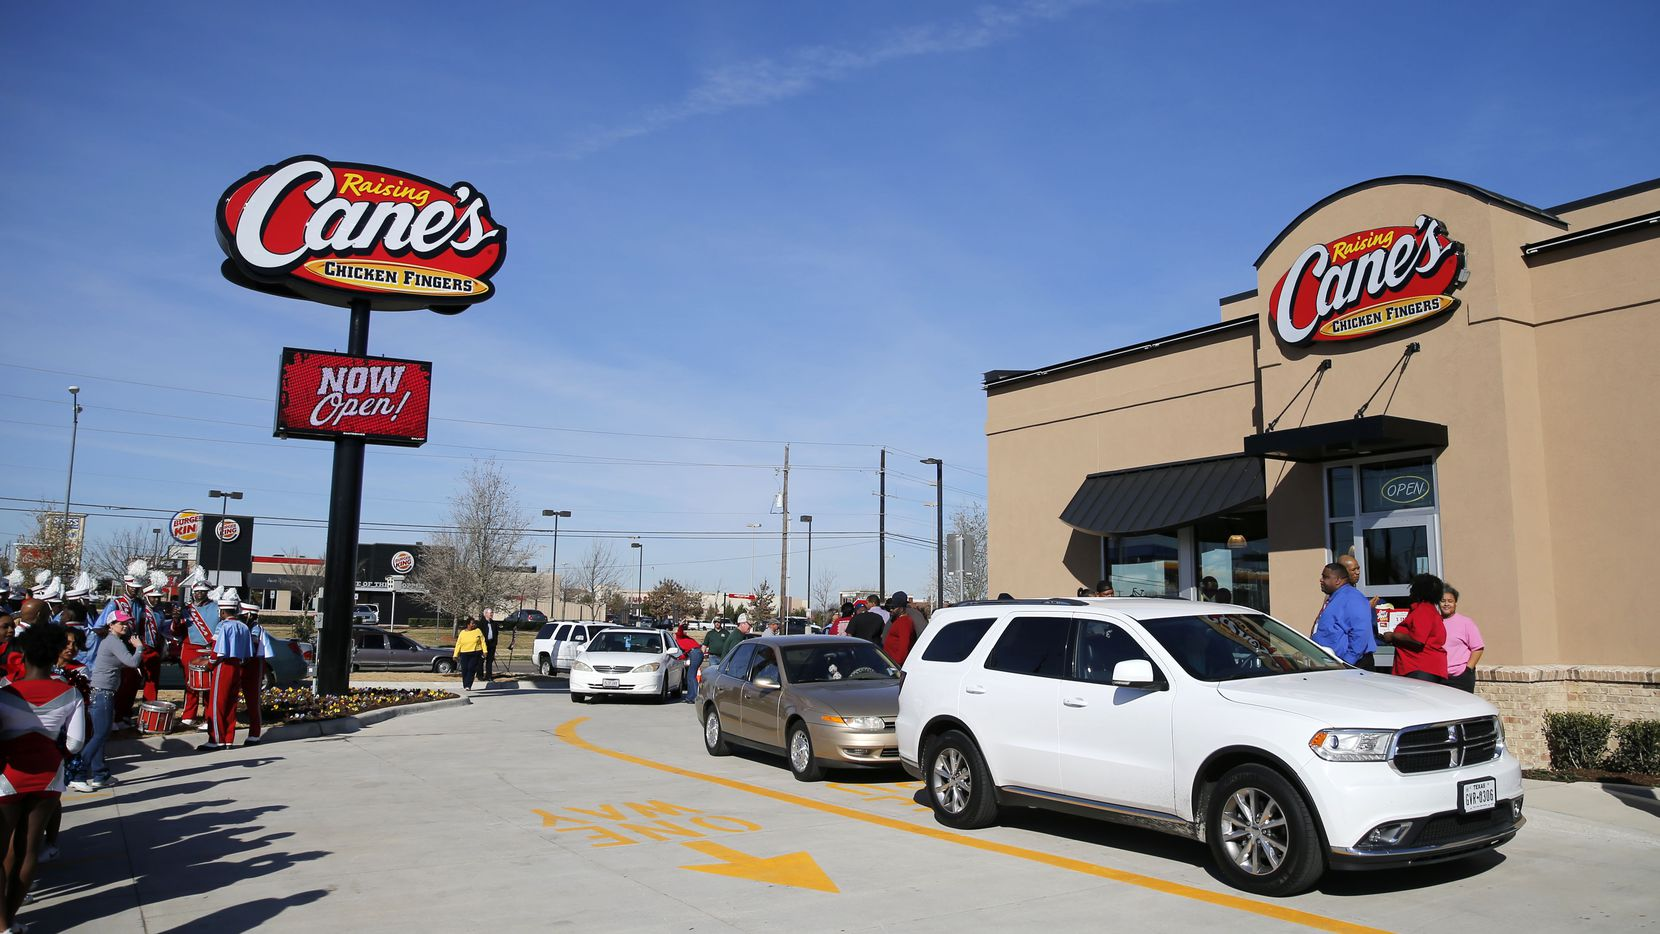 Cars line up at the grand opening of a Raising Cane's in Dallas in this file photo. Mesquite's first location of the chicken restaurant is set to open in October.